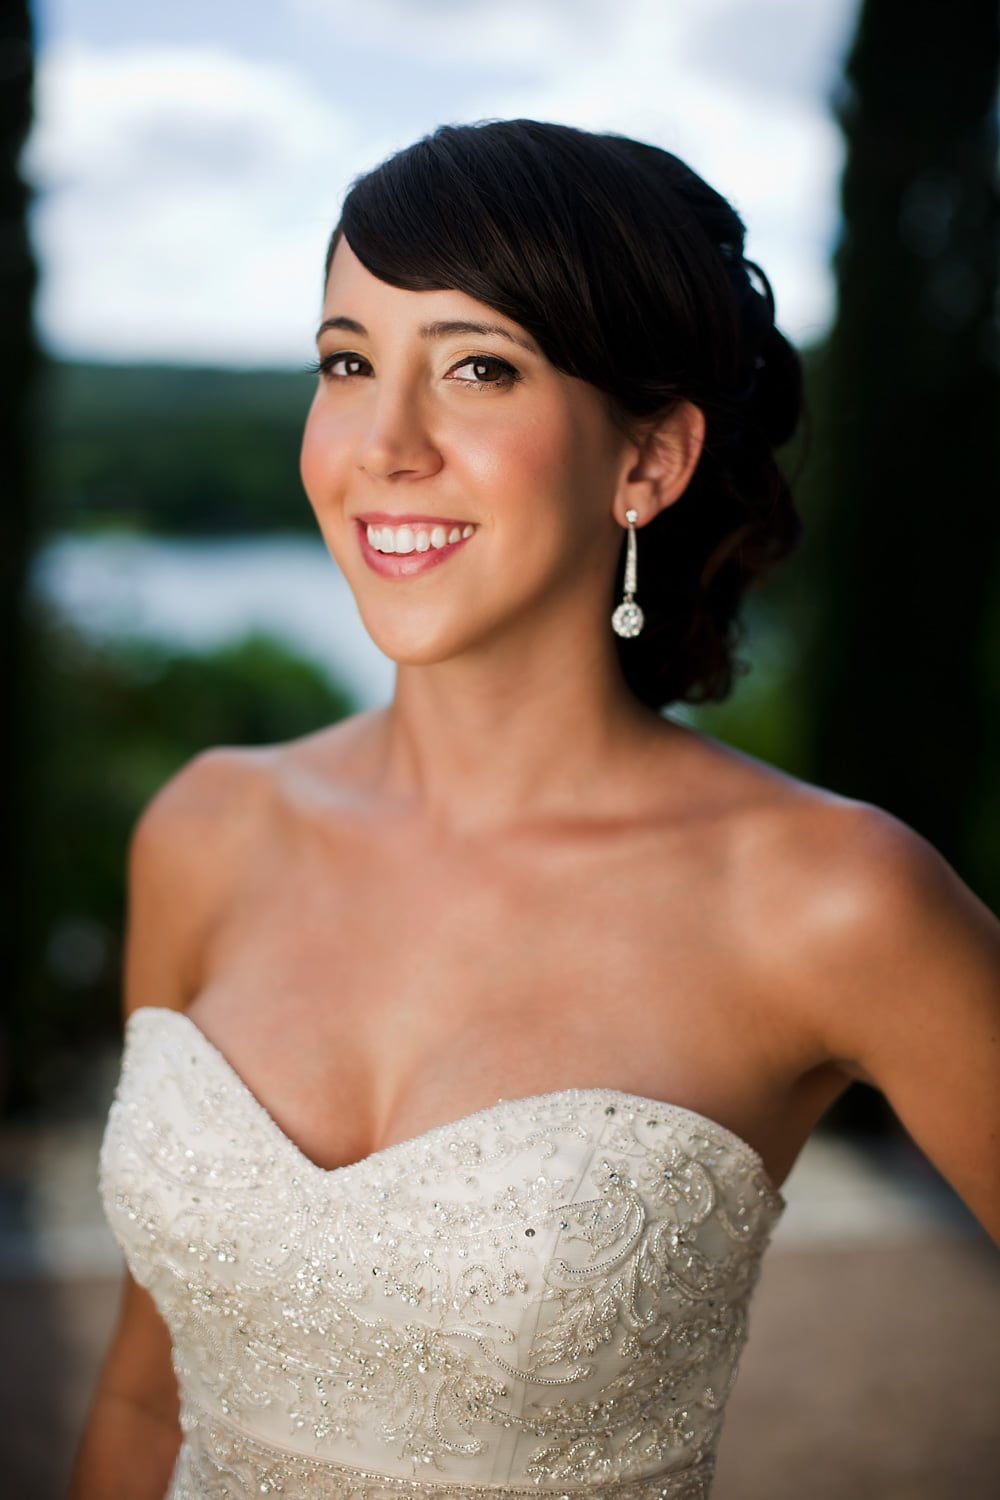 austin-wedding-bridal-31.jpg